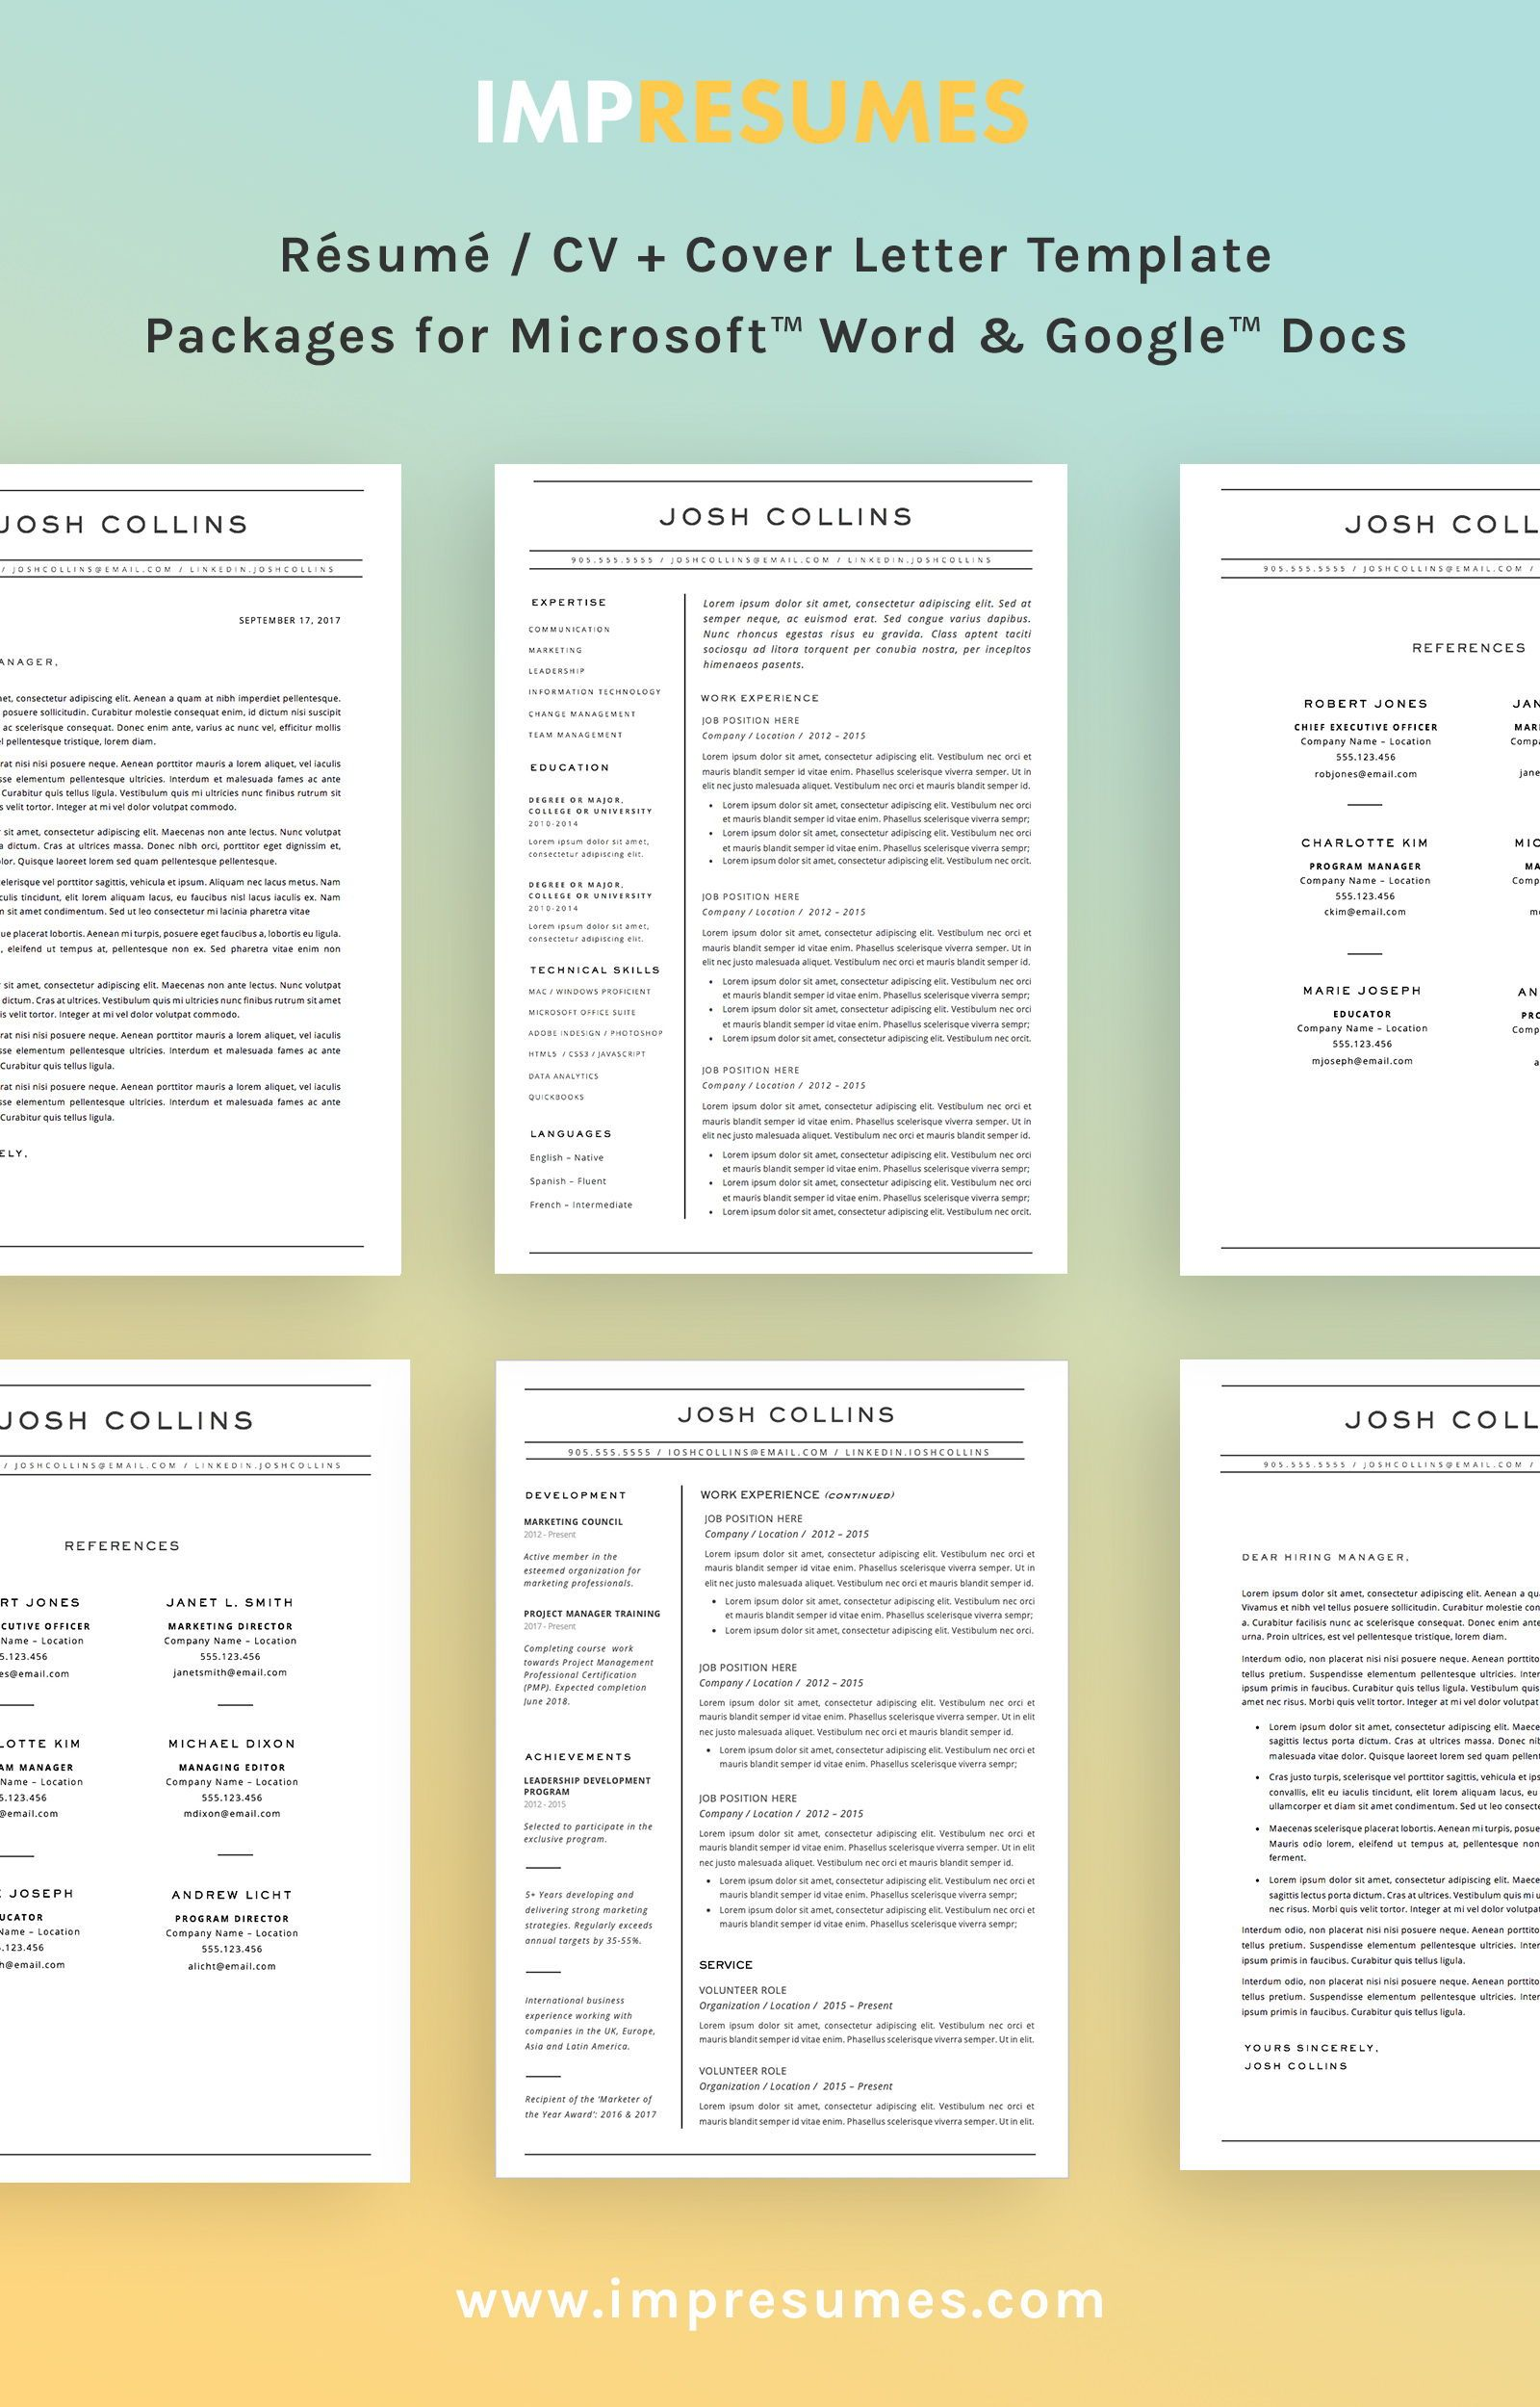 Resume + Cover Letter + References Template for MS Word